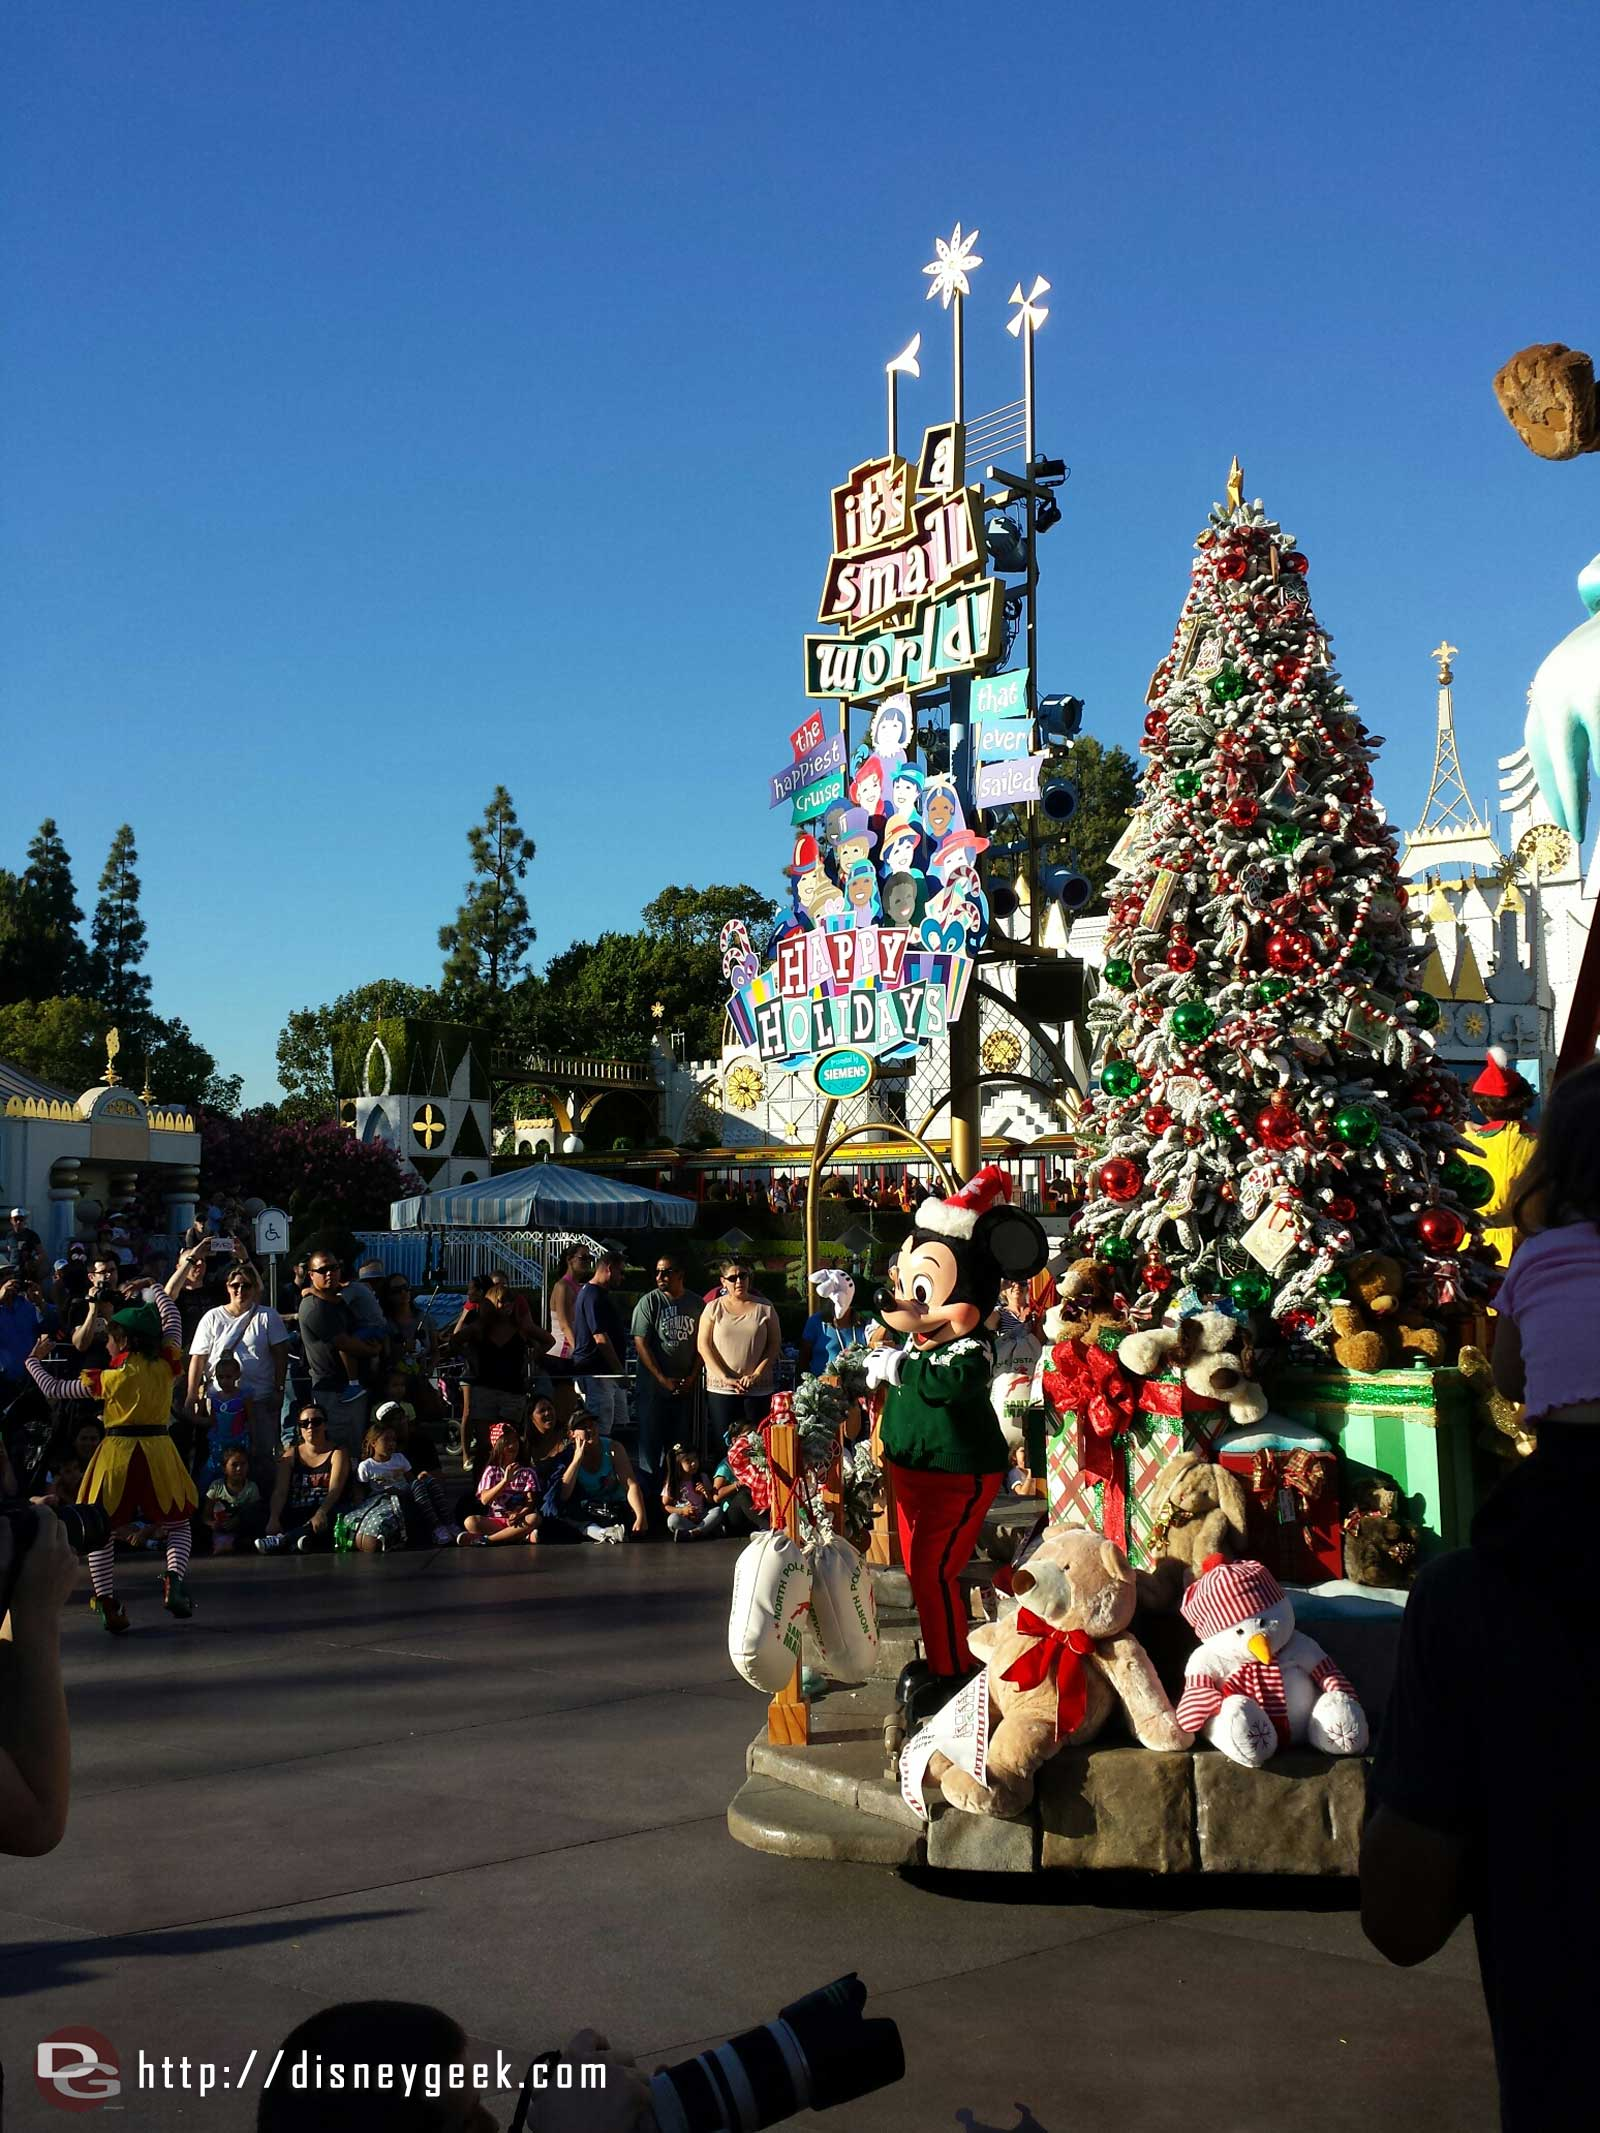 Mickey and Minnie are on the mail room float this year